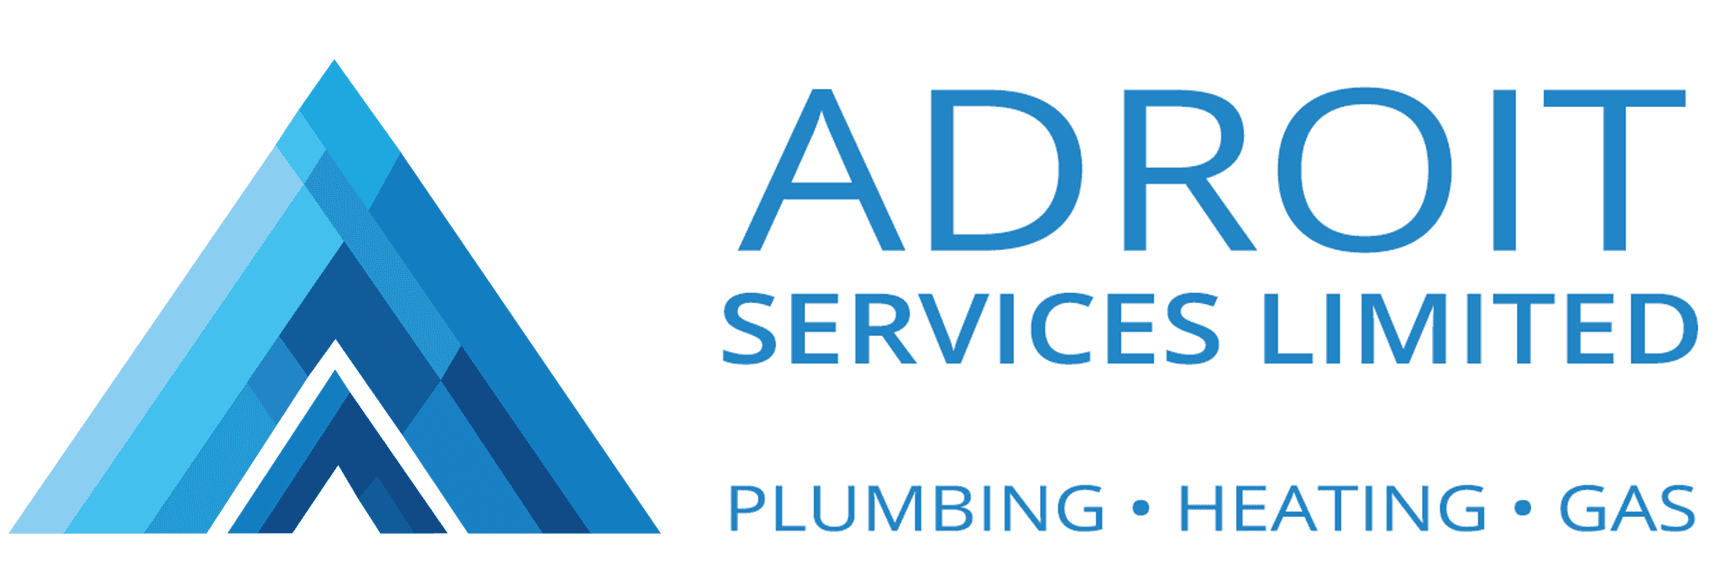 Adroit Services Limited company name